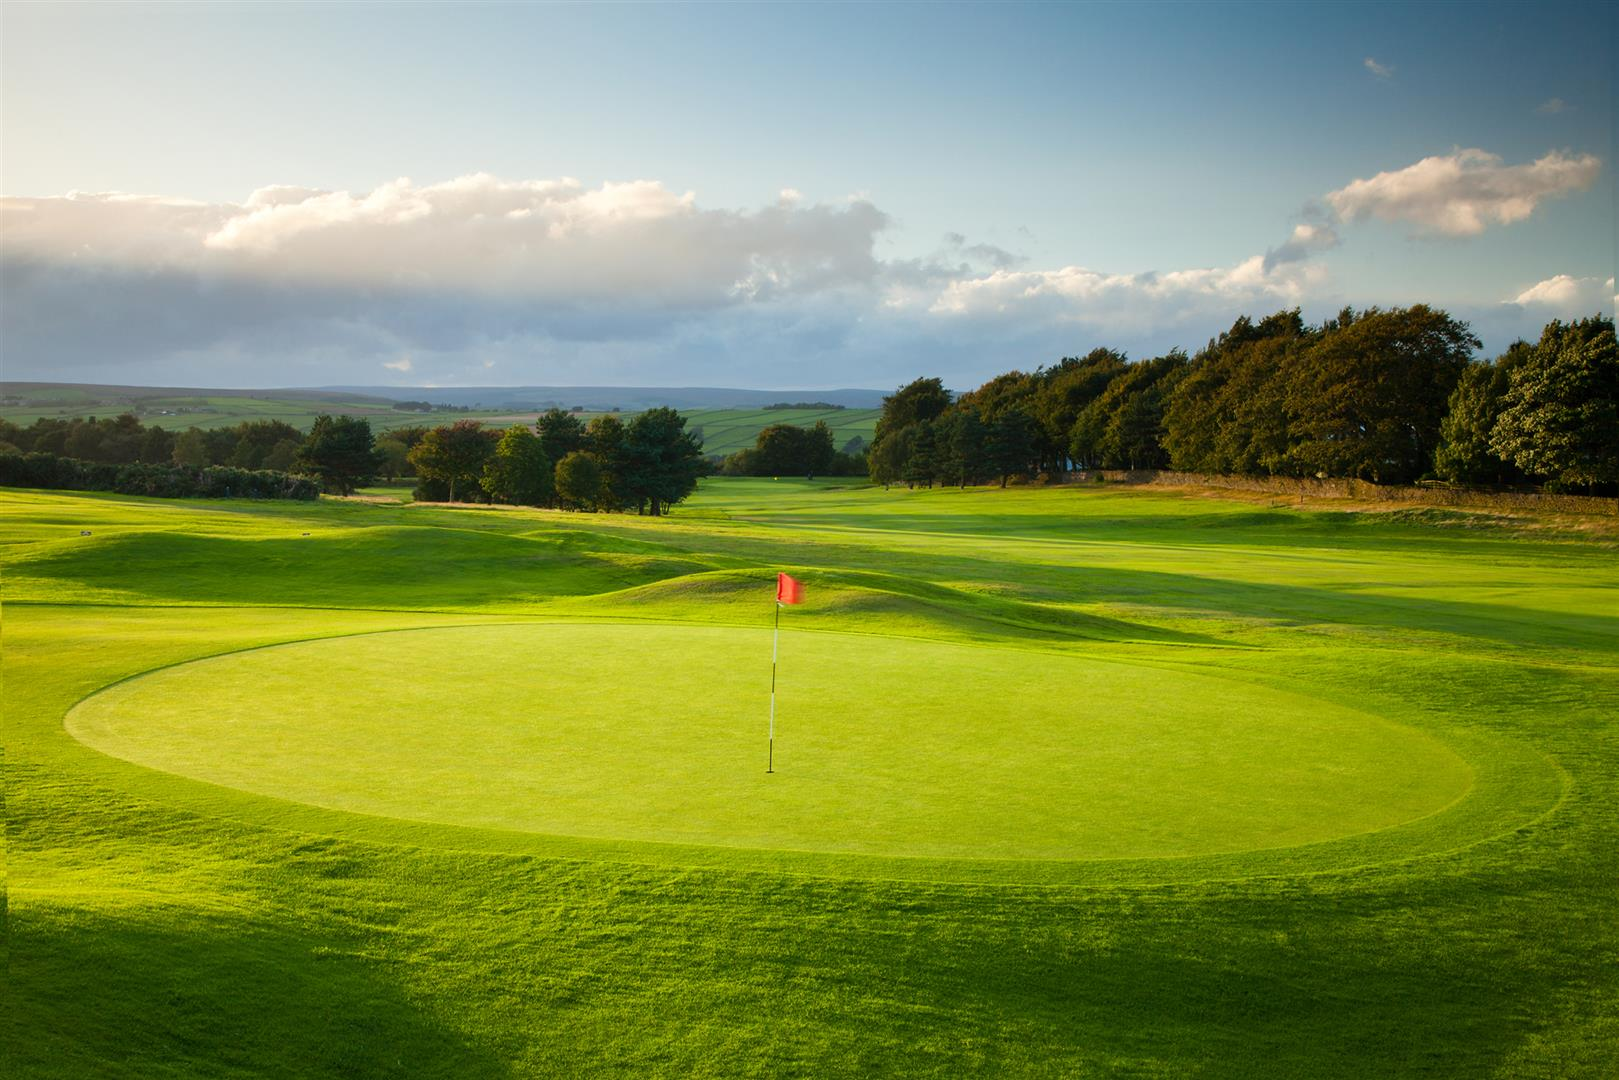 golf mature singles Enjoy meeting and mingling with new people, with singles' vacations from cheapcaribbeancom browse vacations for singles at some of any region's top resorts.